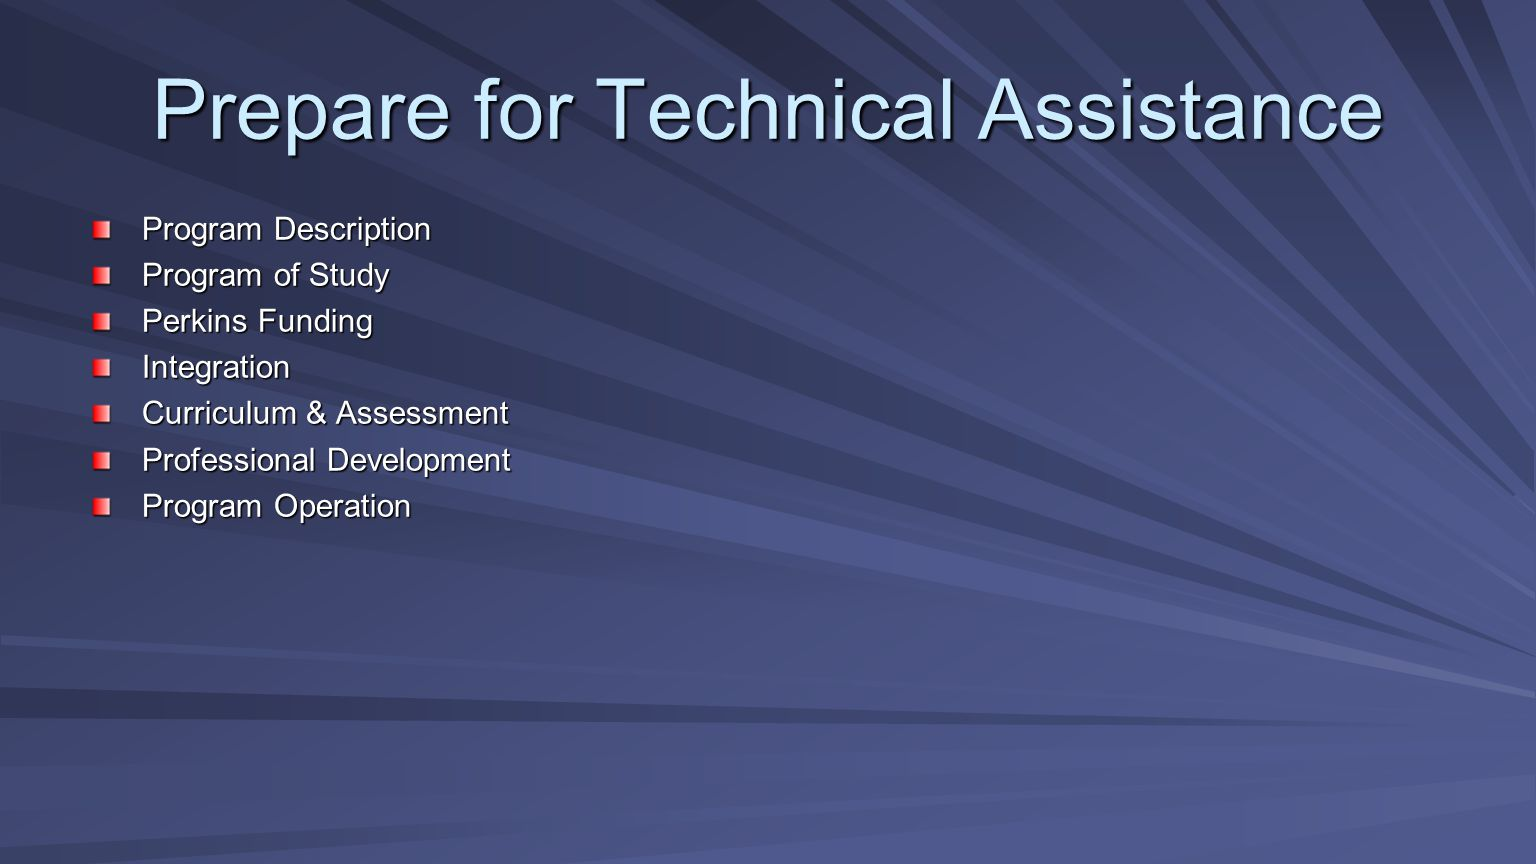 Prepare for Technical Assistance